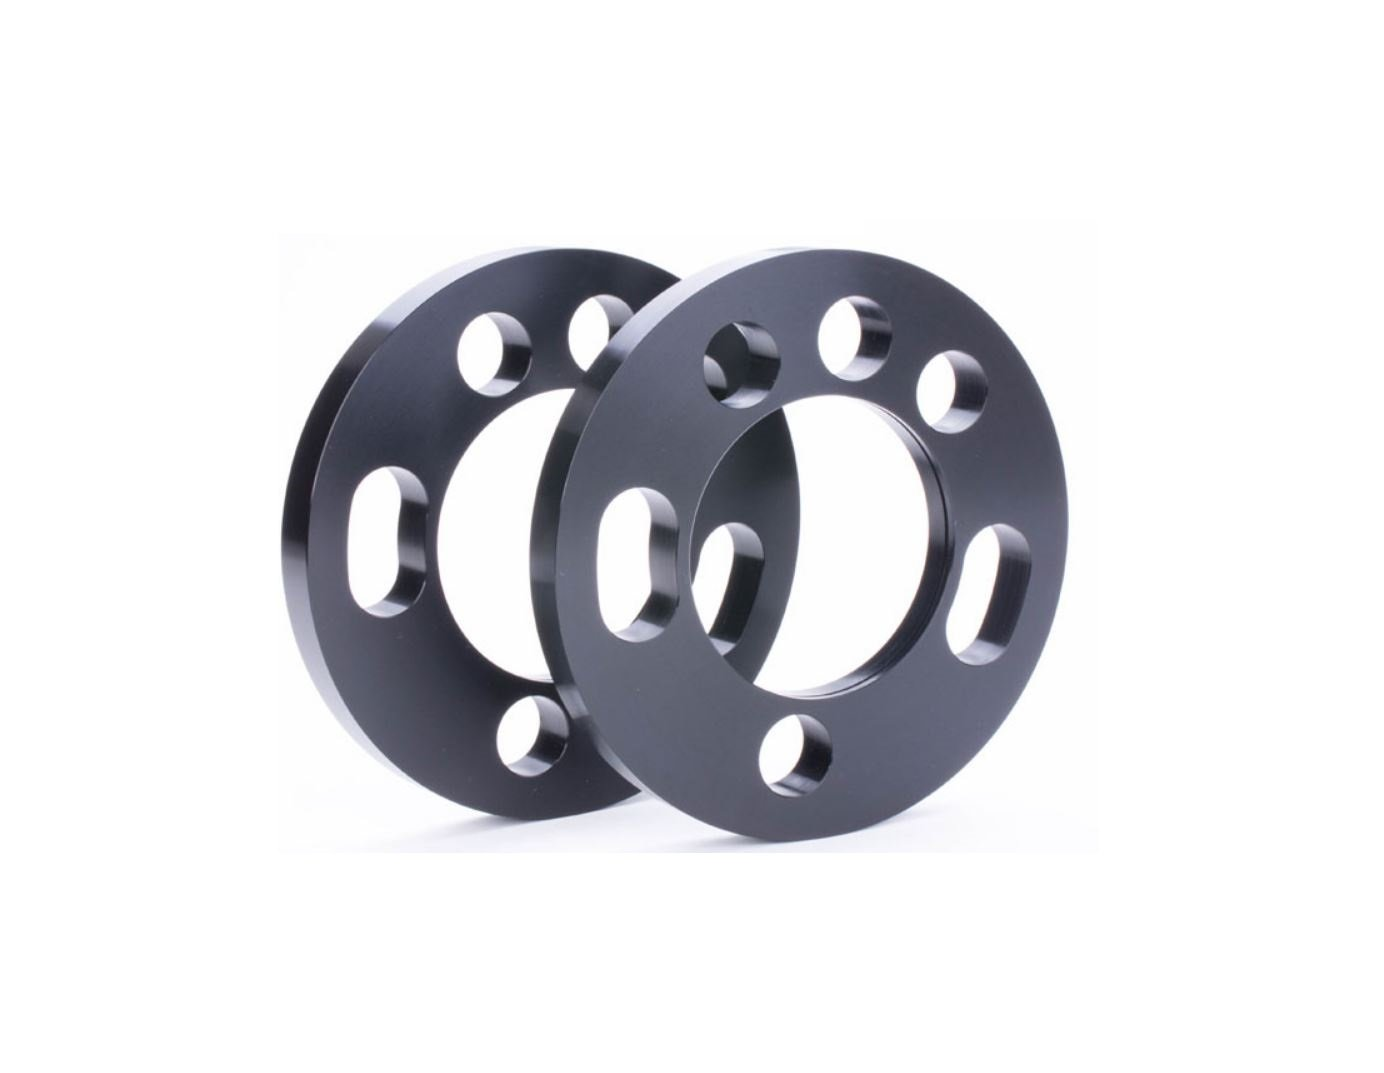 16 Chrome Bolts for Ŕenault Clio 20mm Hubcentric Spacers 2 Pairs